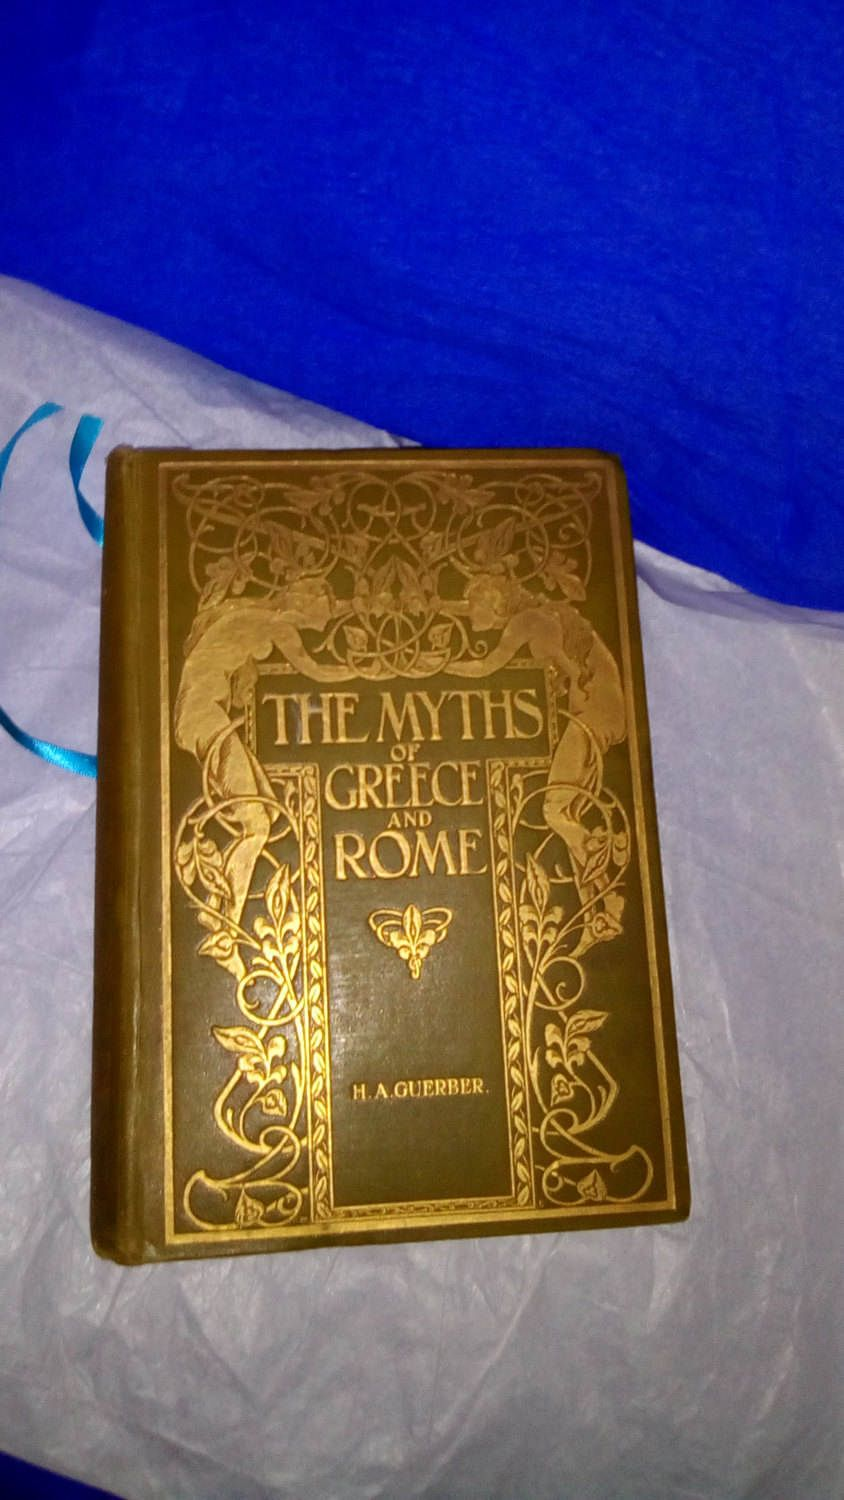 The Myths of Greece and Rome, Their Stories, Signification and Origin. By H. A. Guerber. London, George Harrap's & 3 Co. 1913. Illustrated by TheBohemianBookstore on Etsy